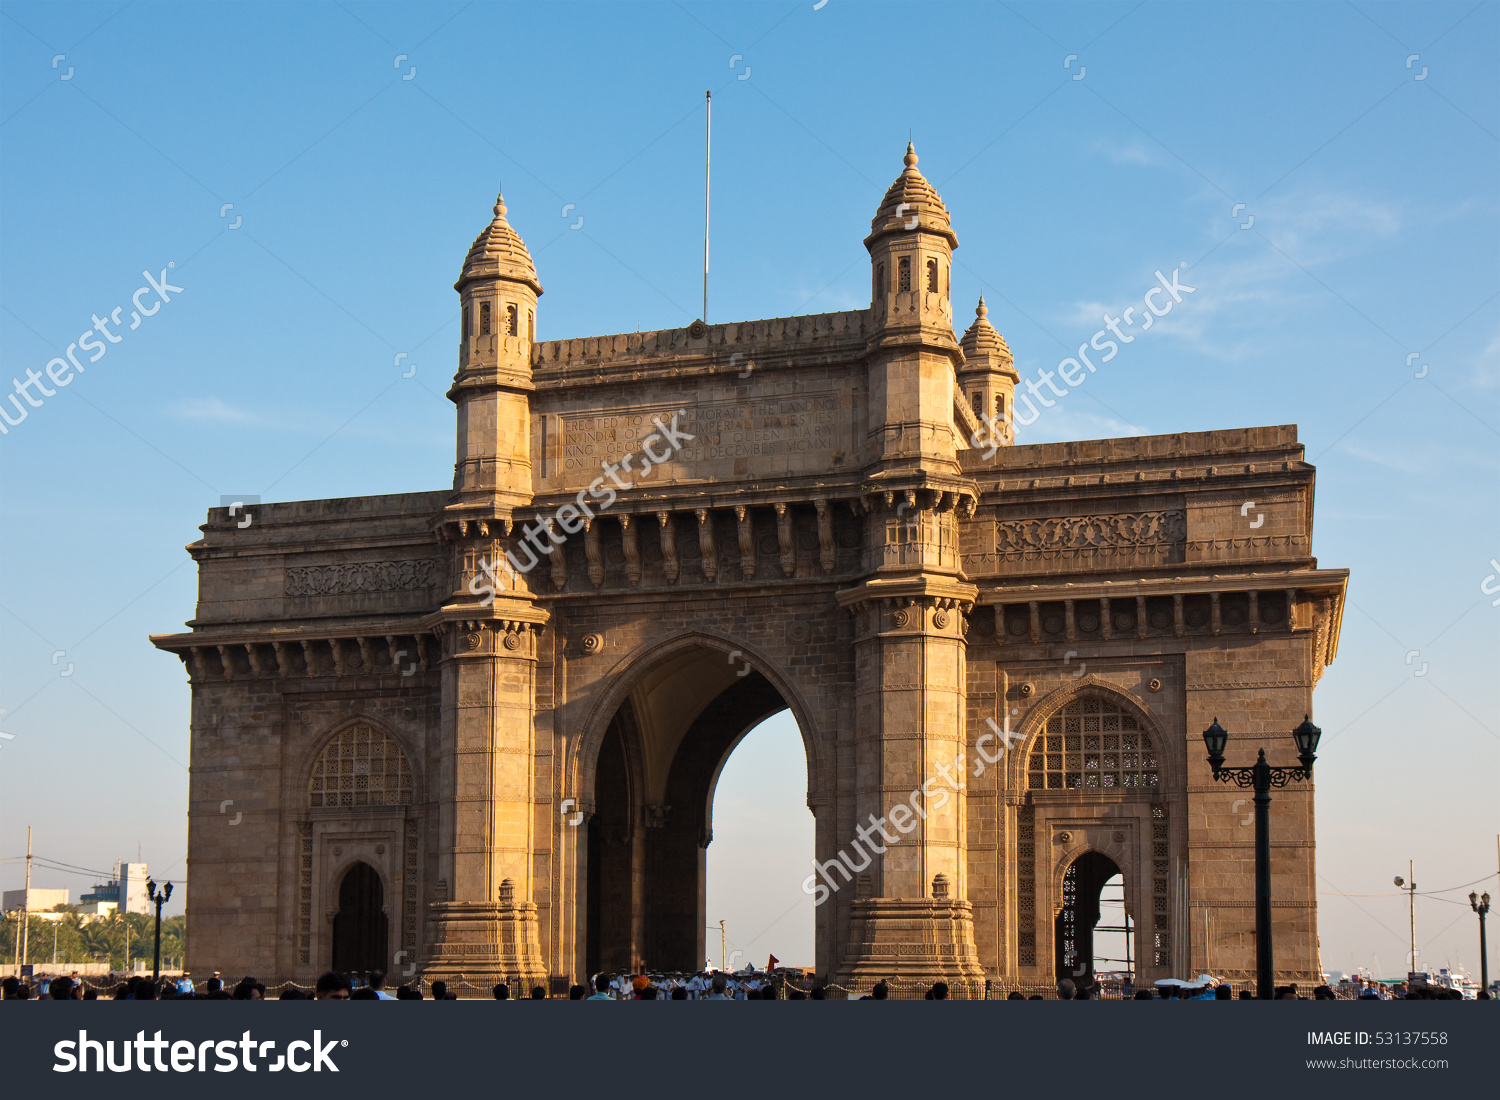 Gateway of india clipart #4